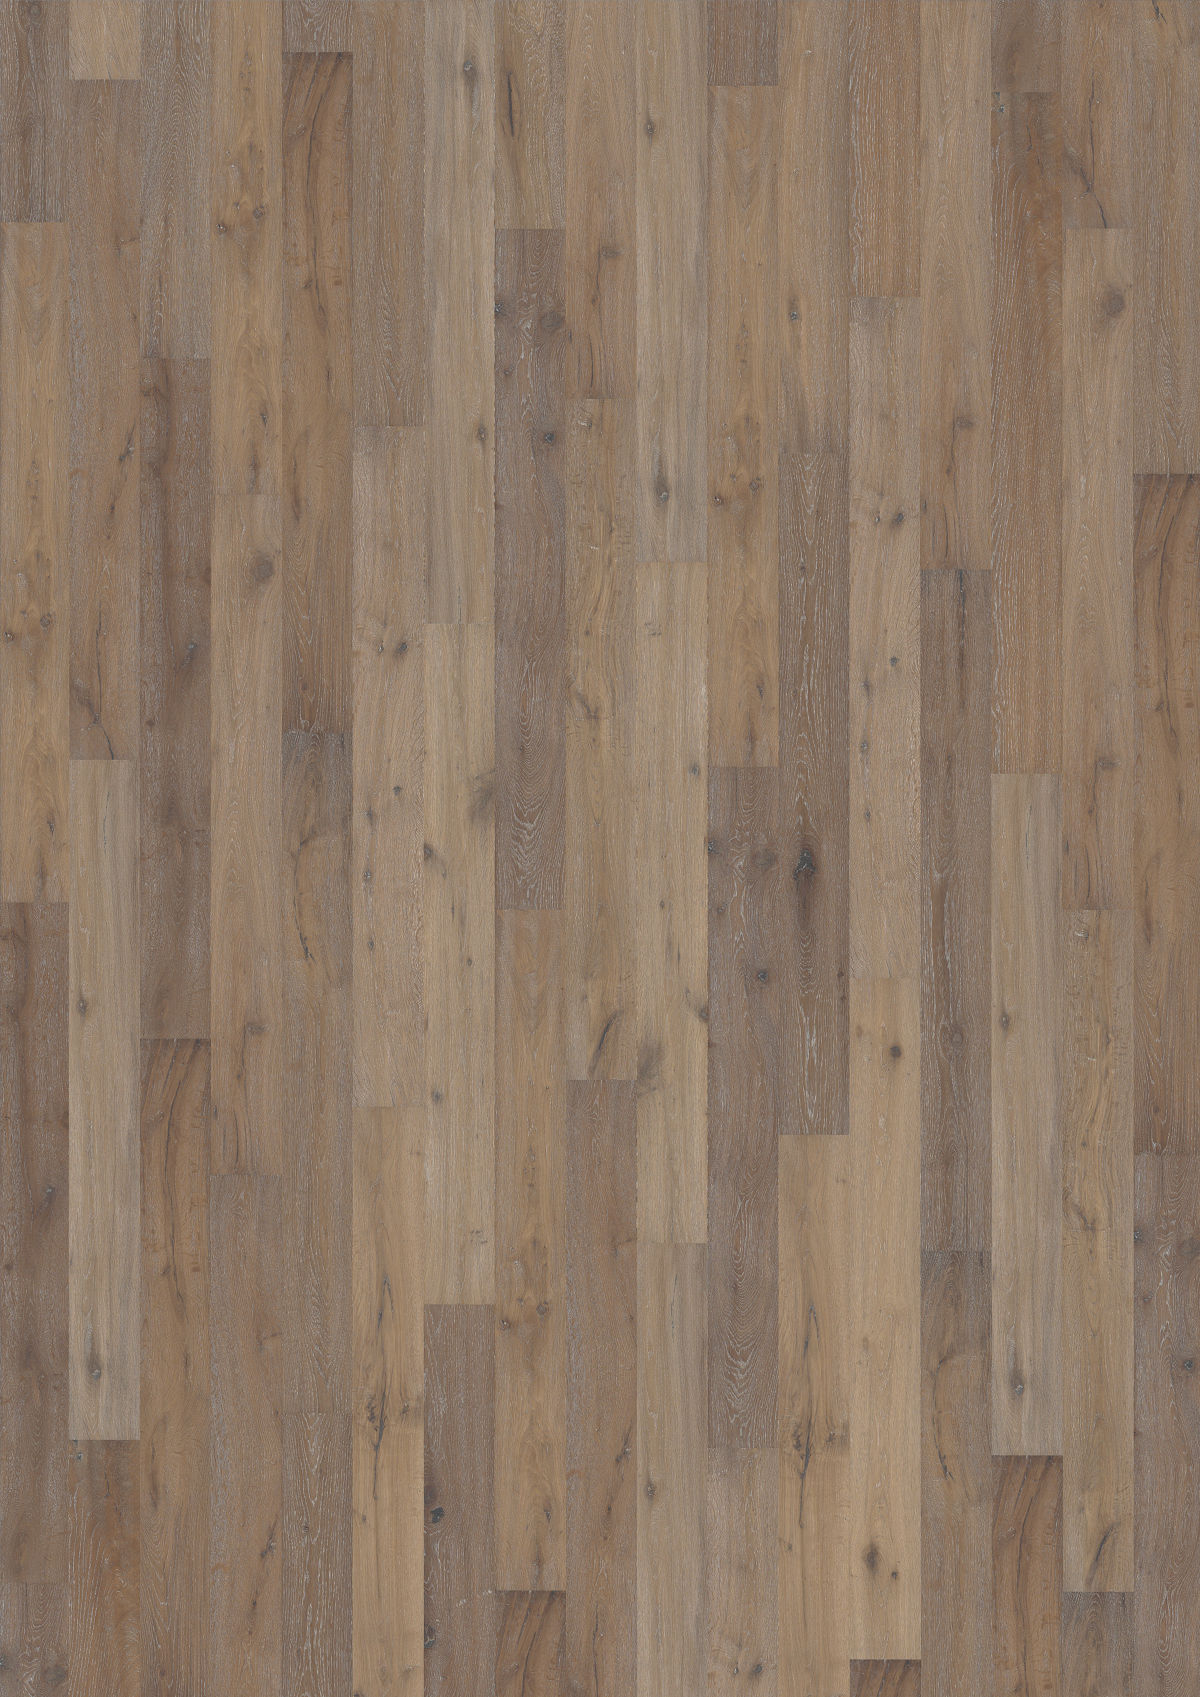 Kahrs oak fossil engineered wood flooring for Kahrs flooring